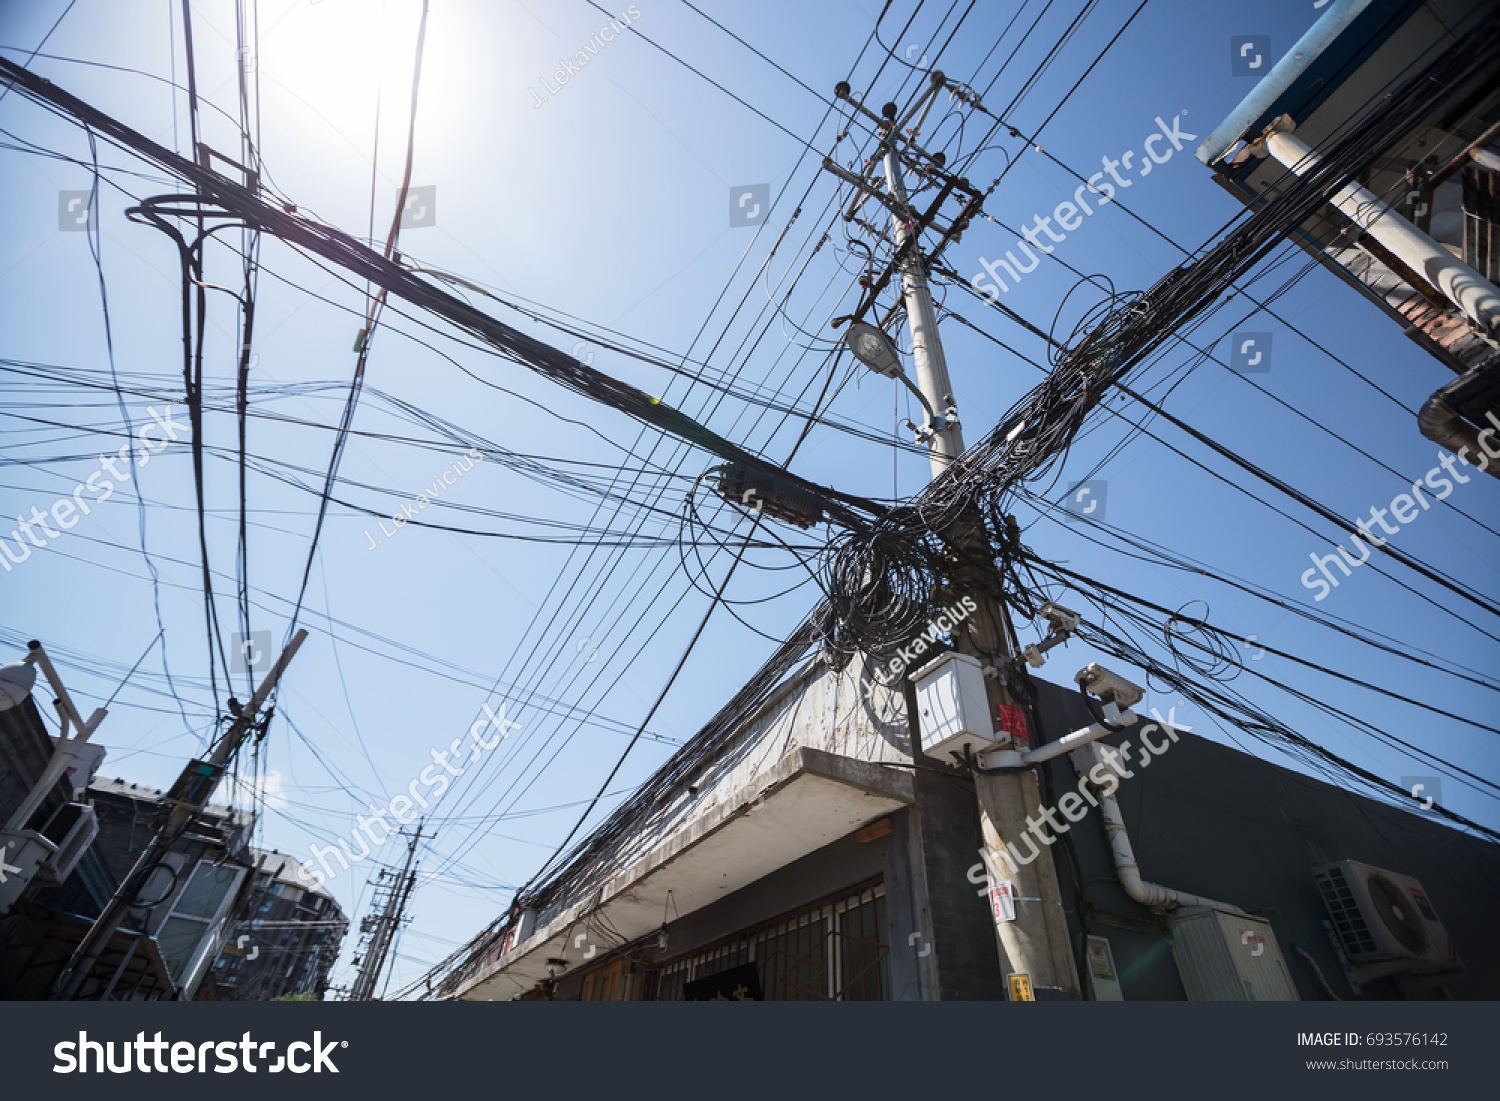 Chaos Cables Wires On Street Shanghai Stock Photo (Download Now ...